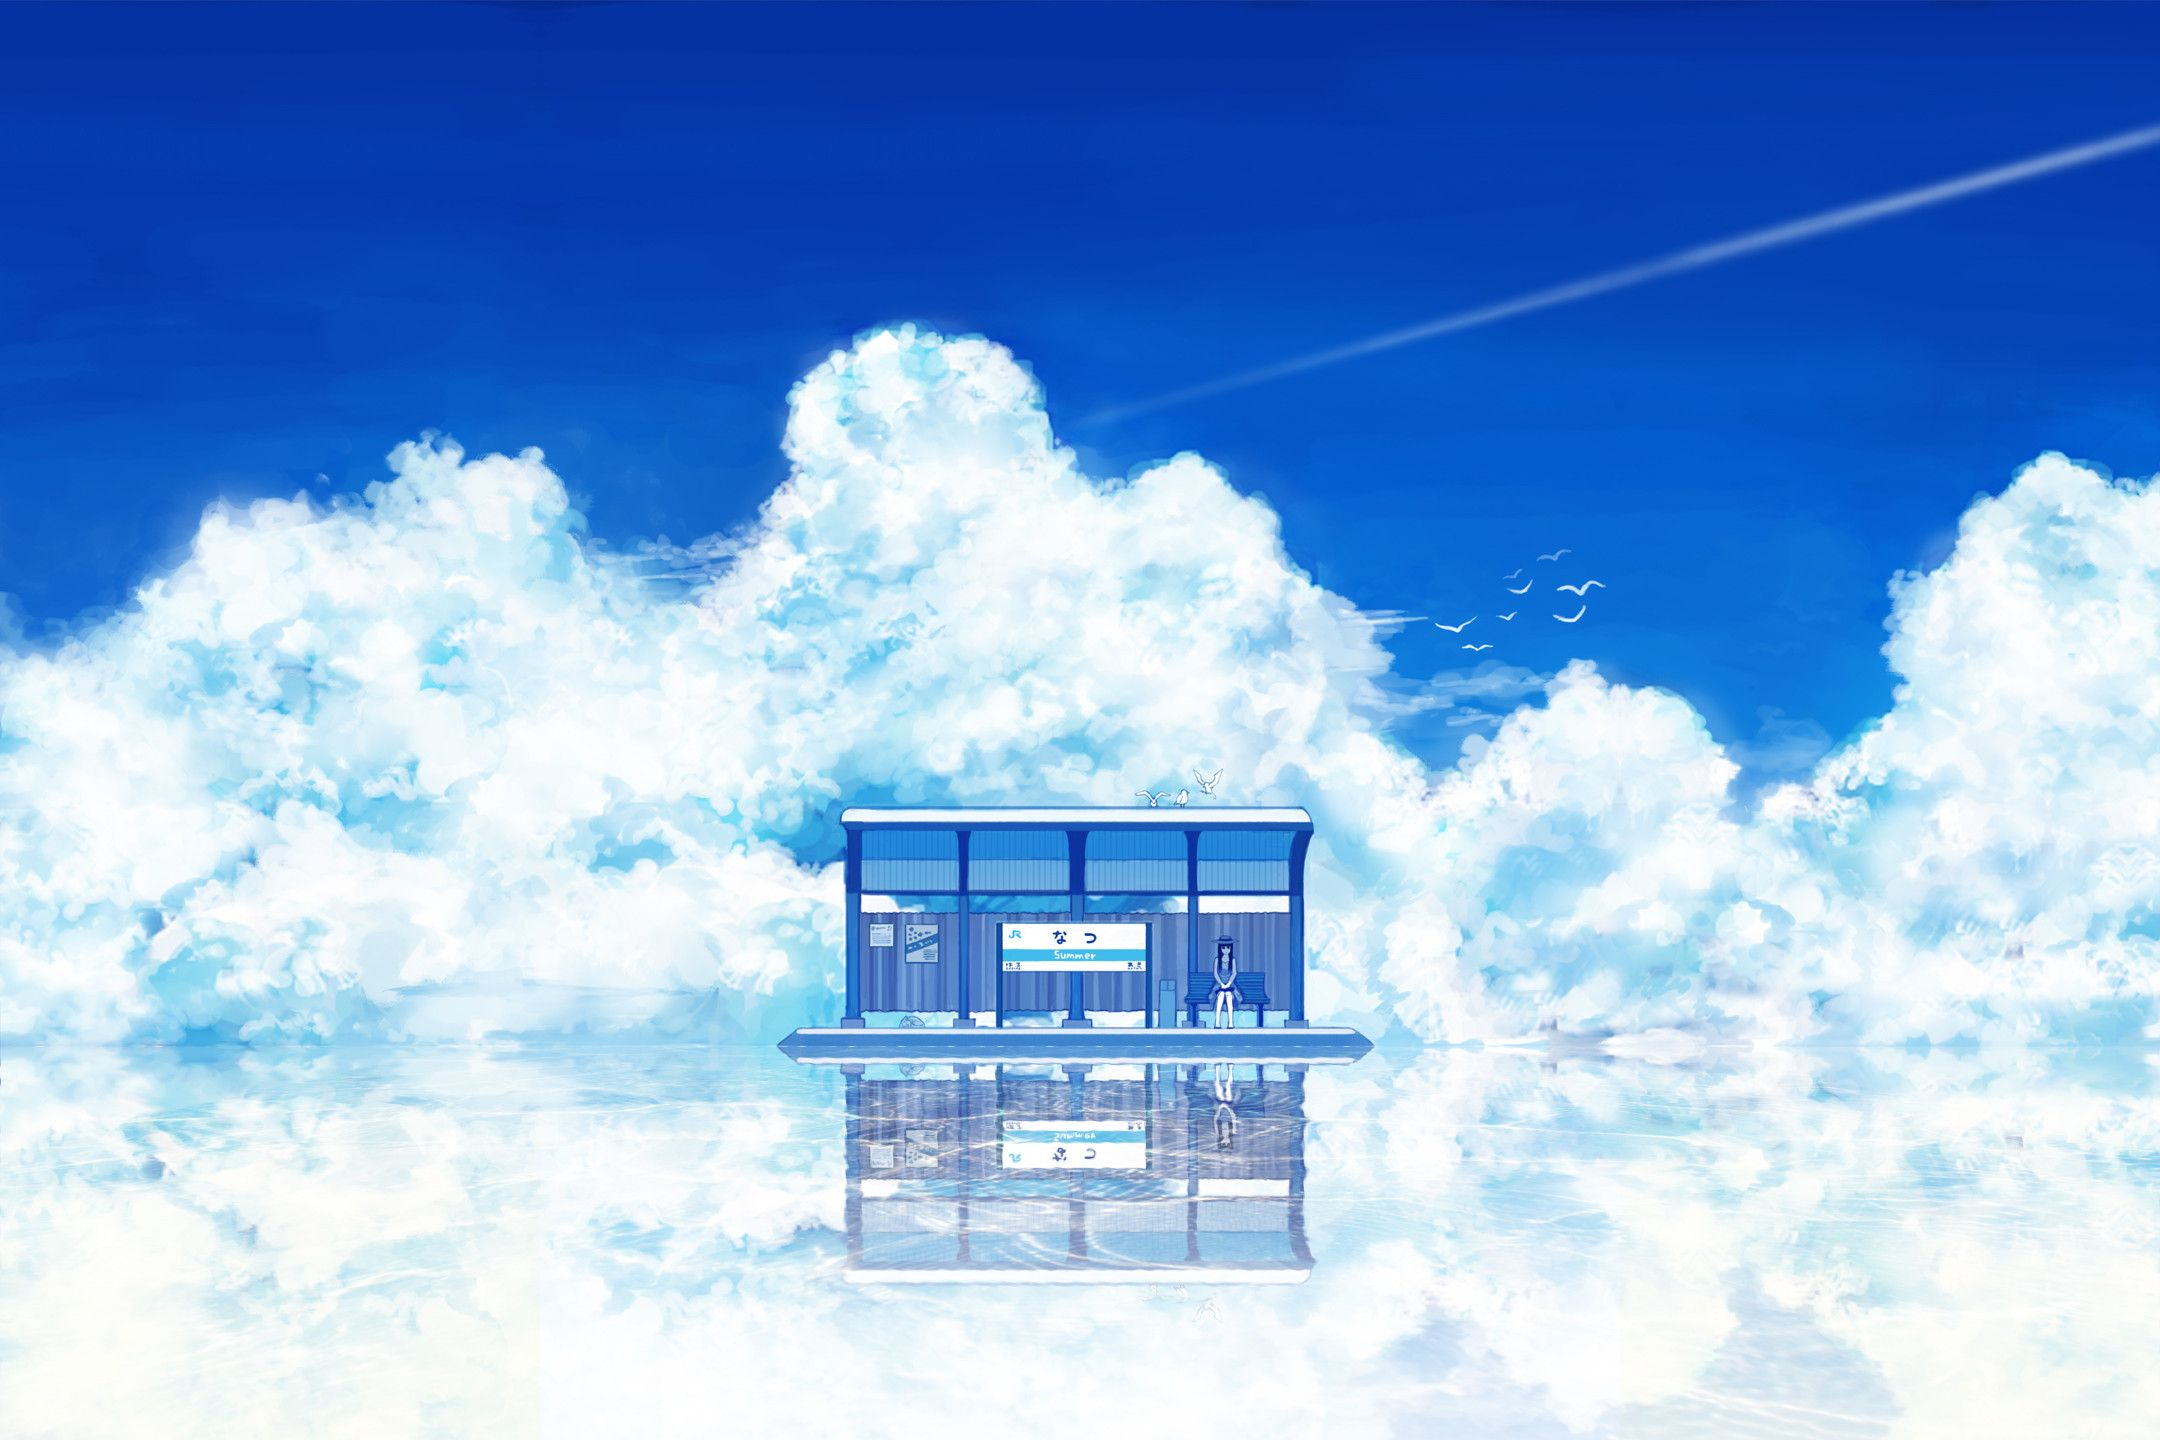 Res 2160x1440 Hd Wallpaper Background Image Id 109509 Anime Scenery Anime Scenery Wallpaper Scenery Wallpaper